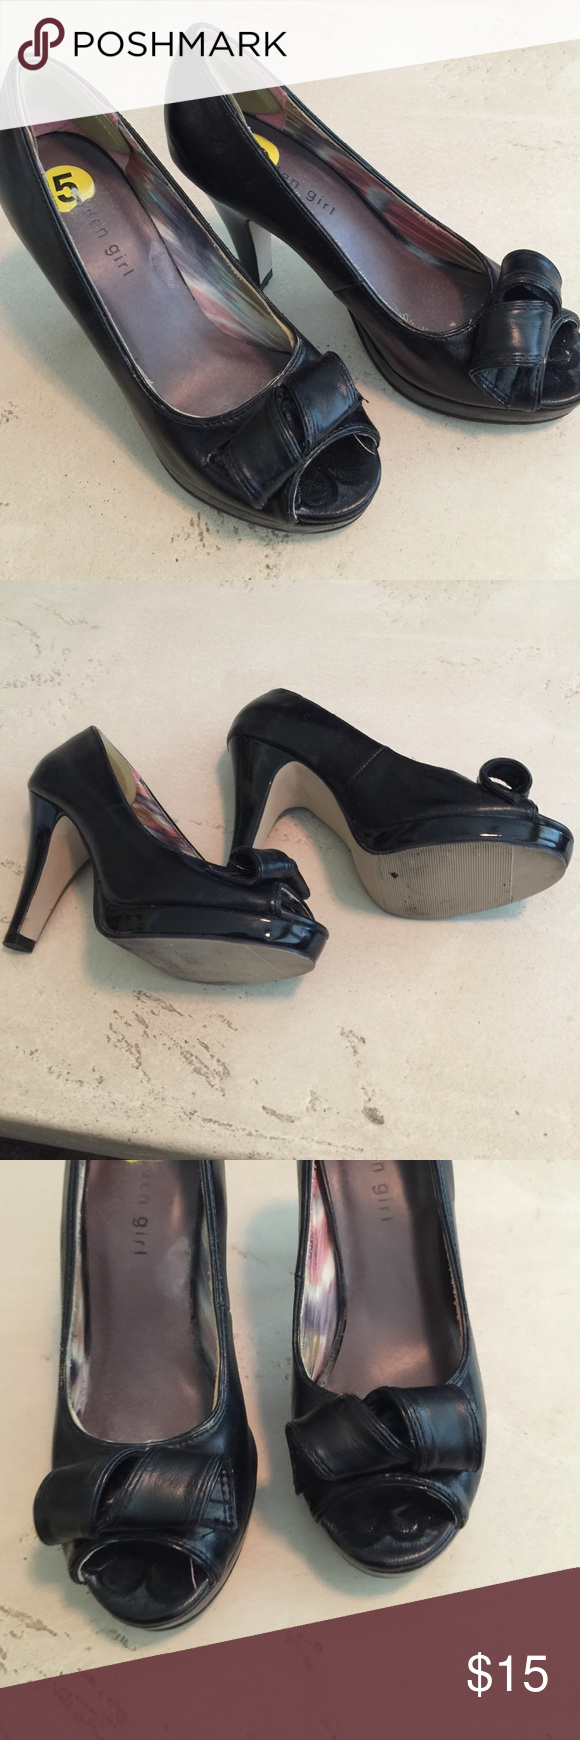 Madden Girl black heals, size 5 Madden Girl black heals, size 5. Good used condition. Leather shoe, black patten leather heals Madden Girl Shoes Heels